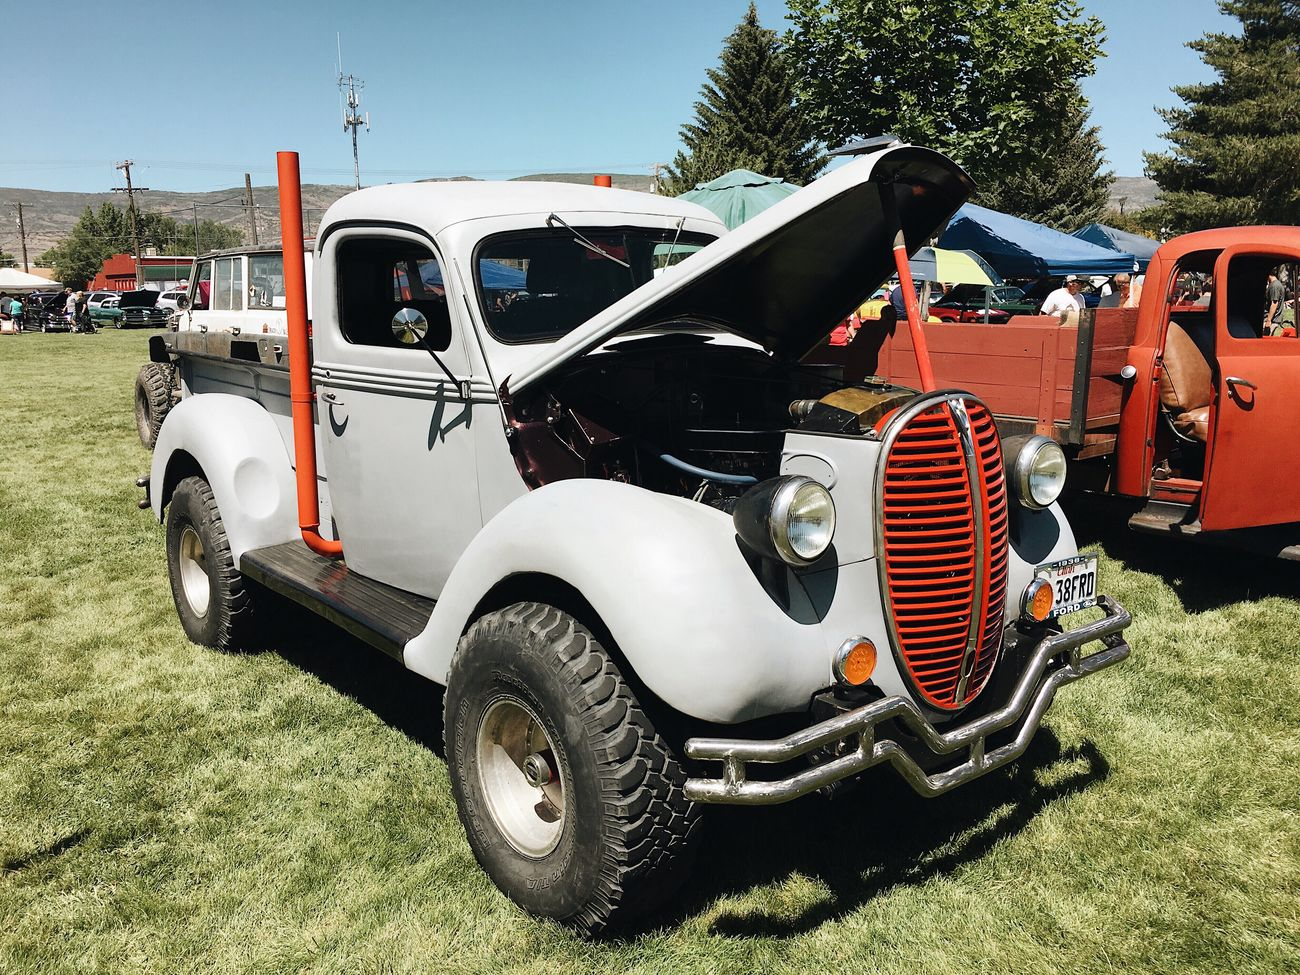 more from the car show today. Heber City, 'back to the 50s' car show. Heber City